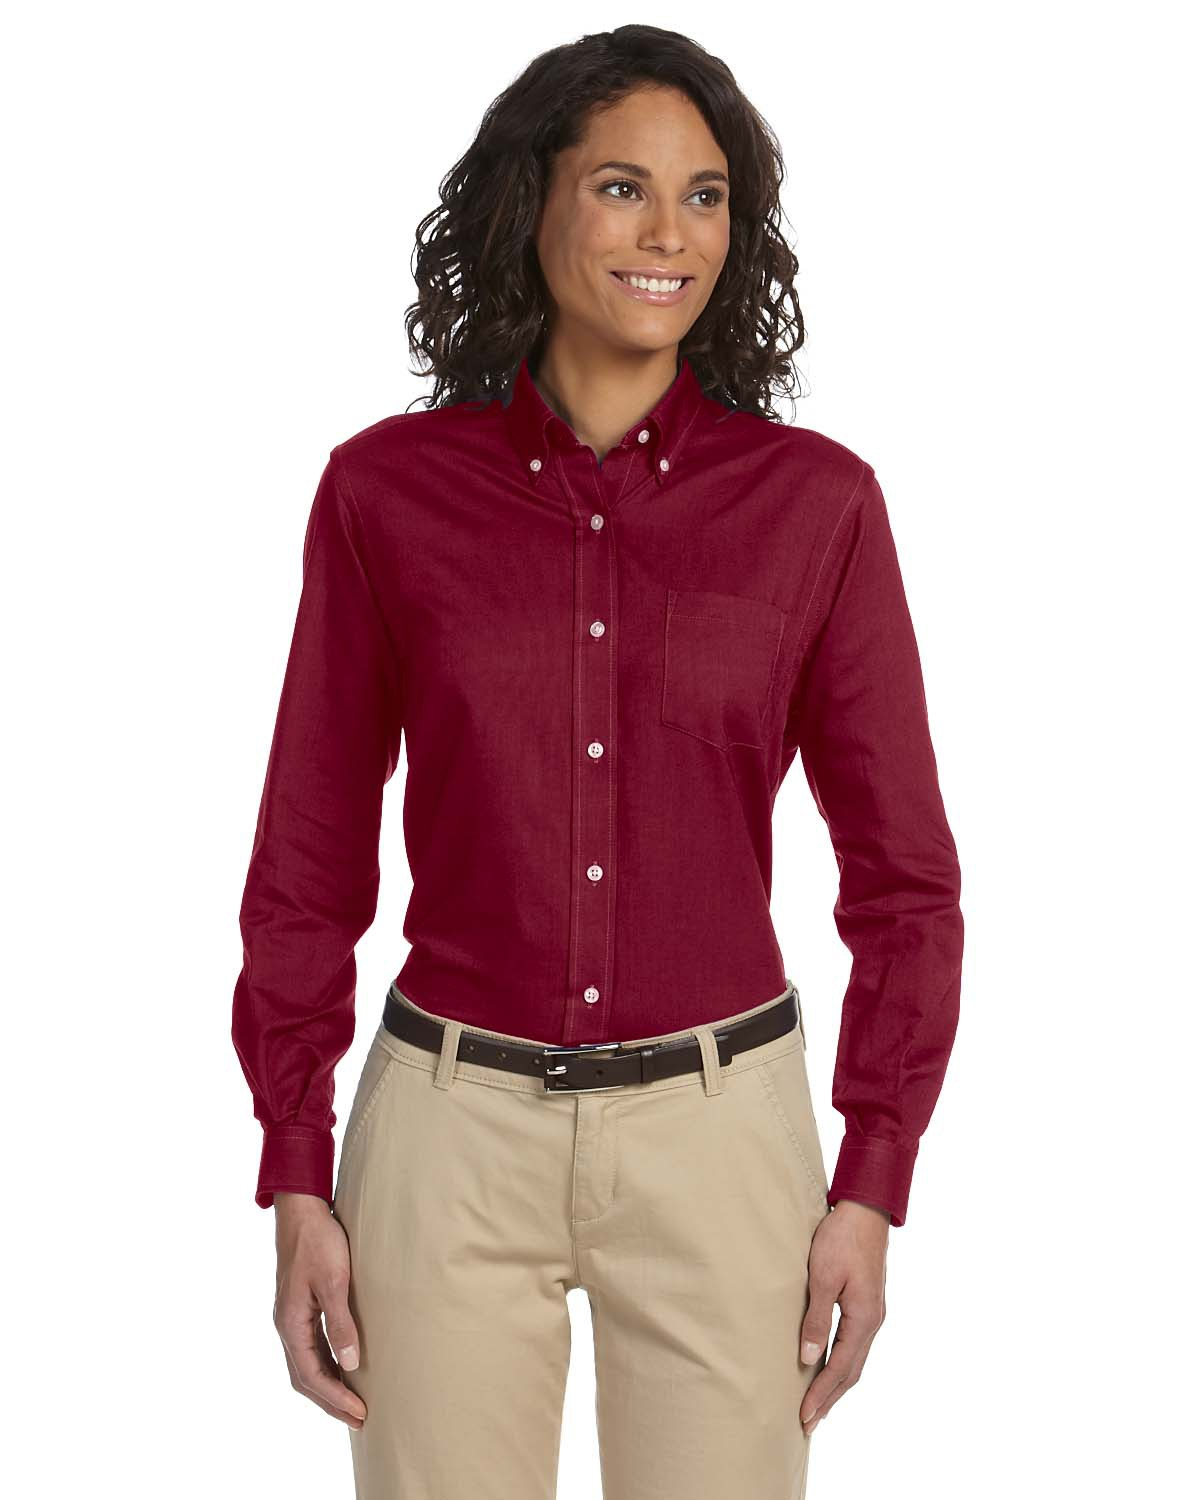 Van Heusen 59800  Women's Long-Sleeve Wrinkle-Resistant Oxford